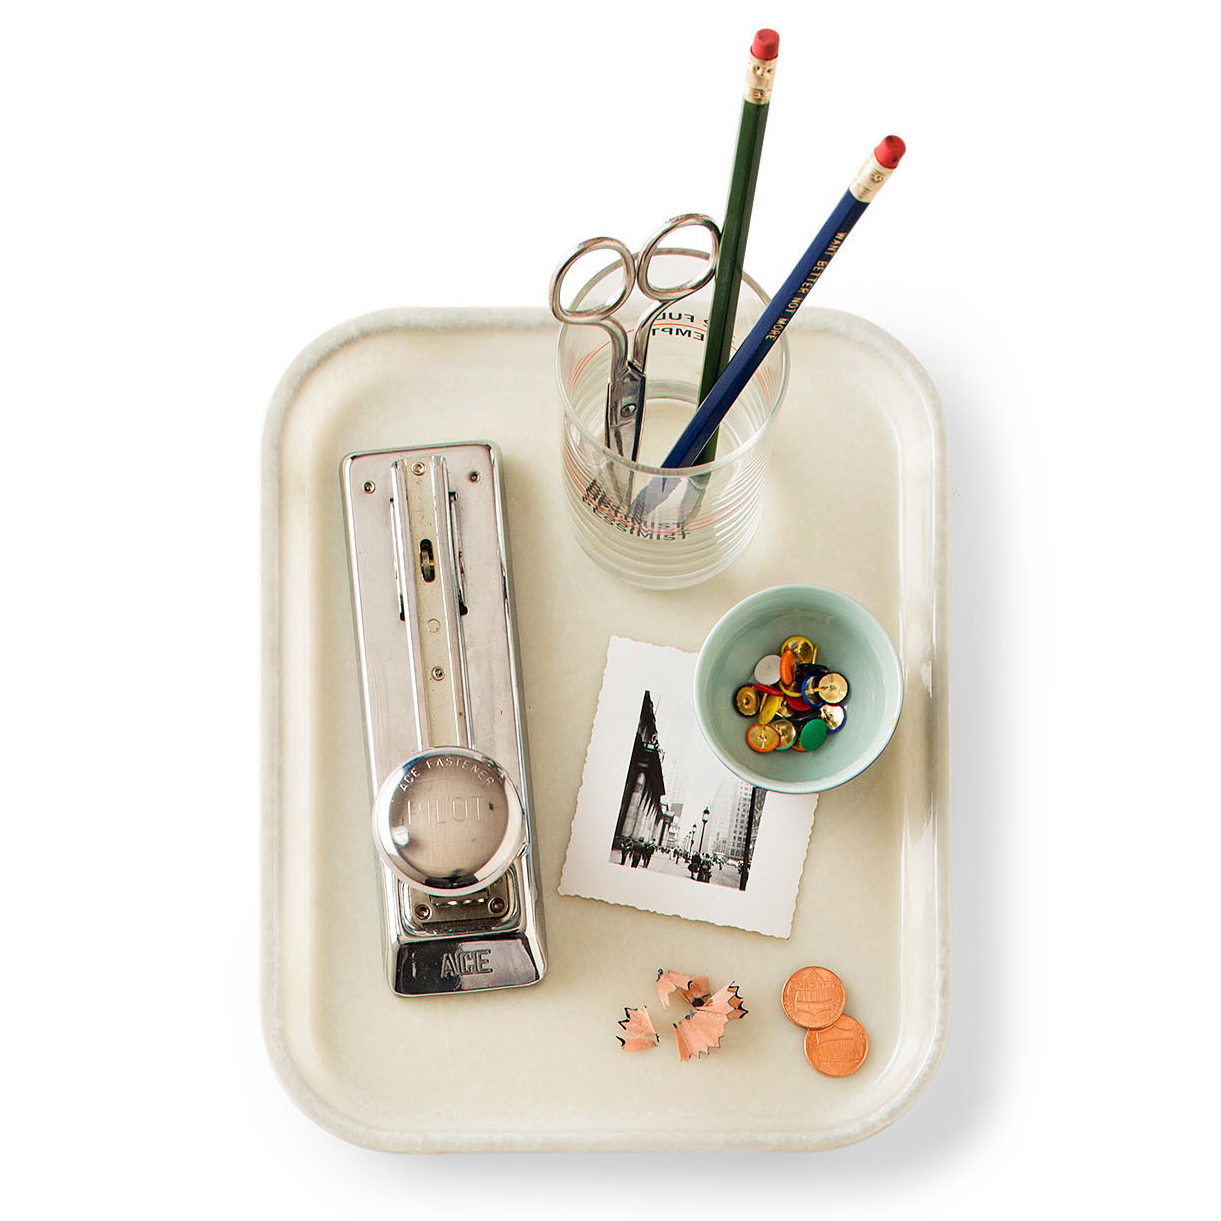 glass with pencils scissors bowl of tacks photo on tray